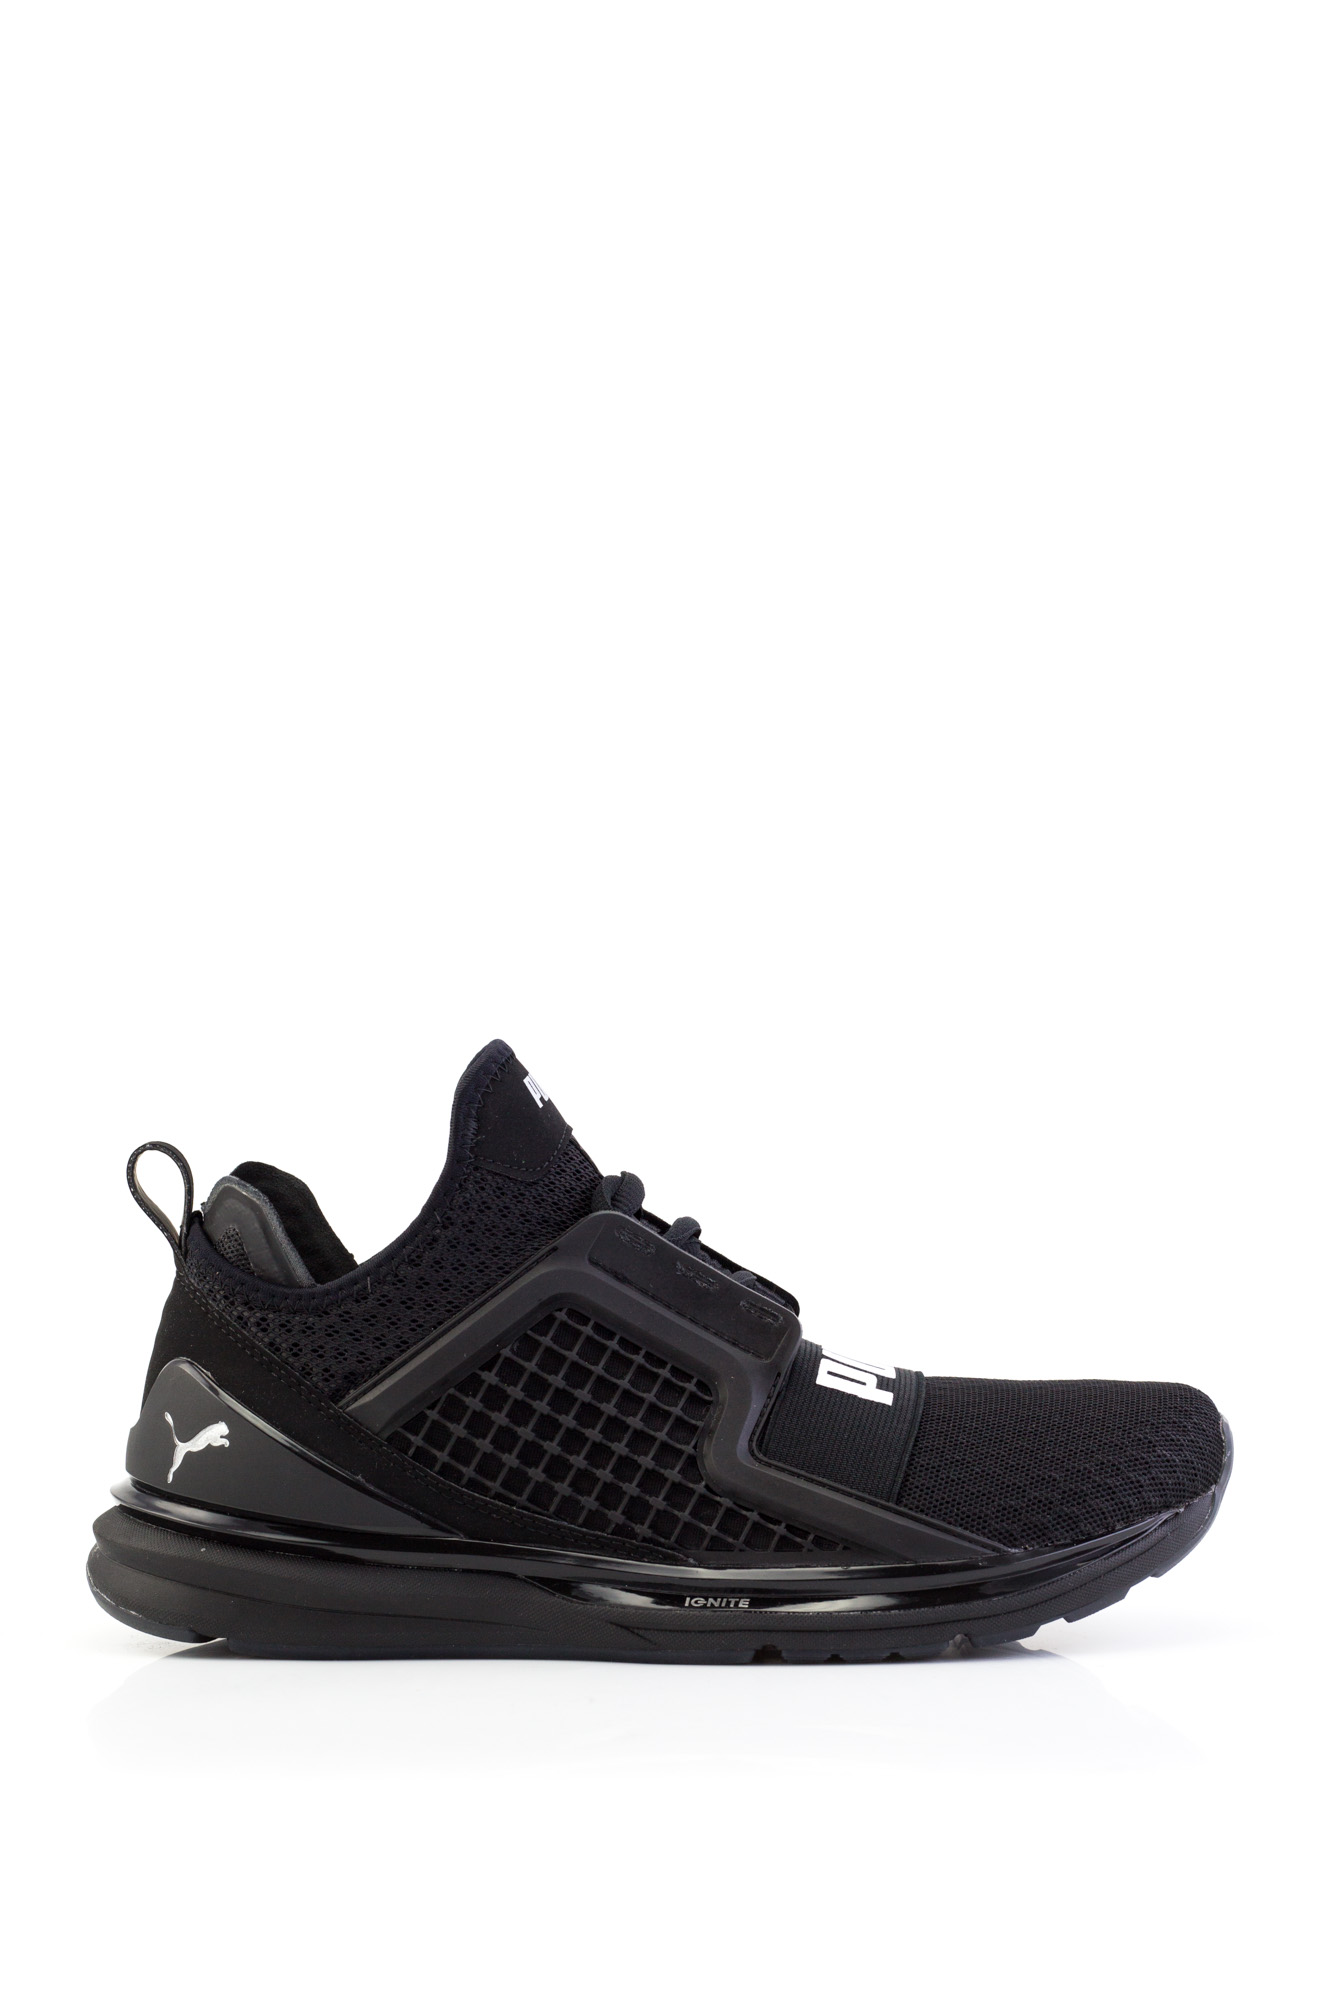 Puma - Ignite limitless black